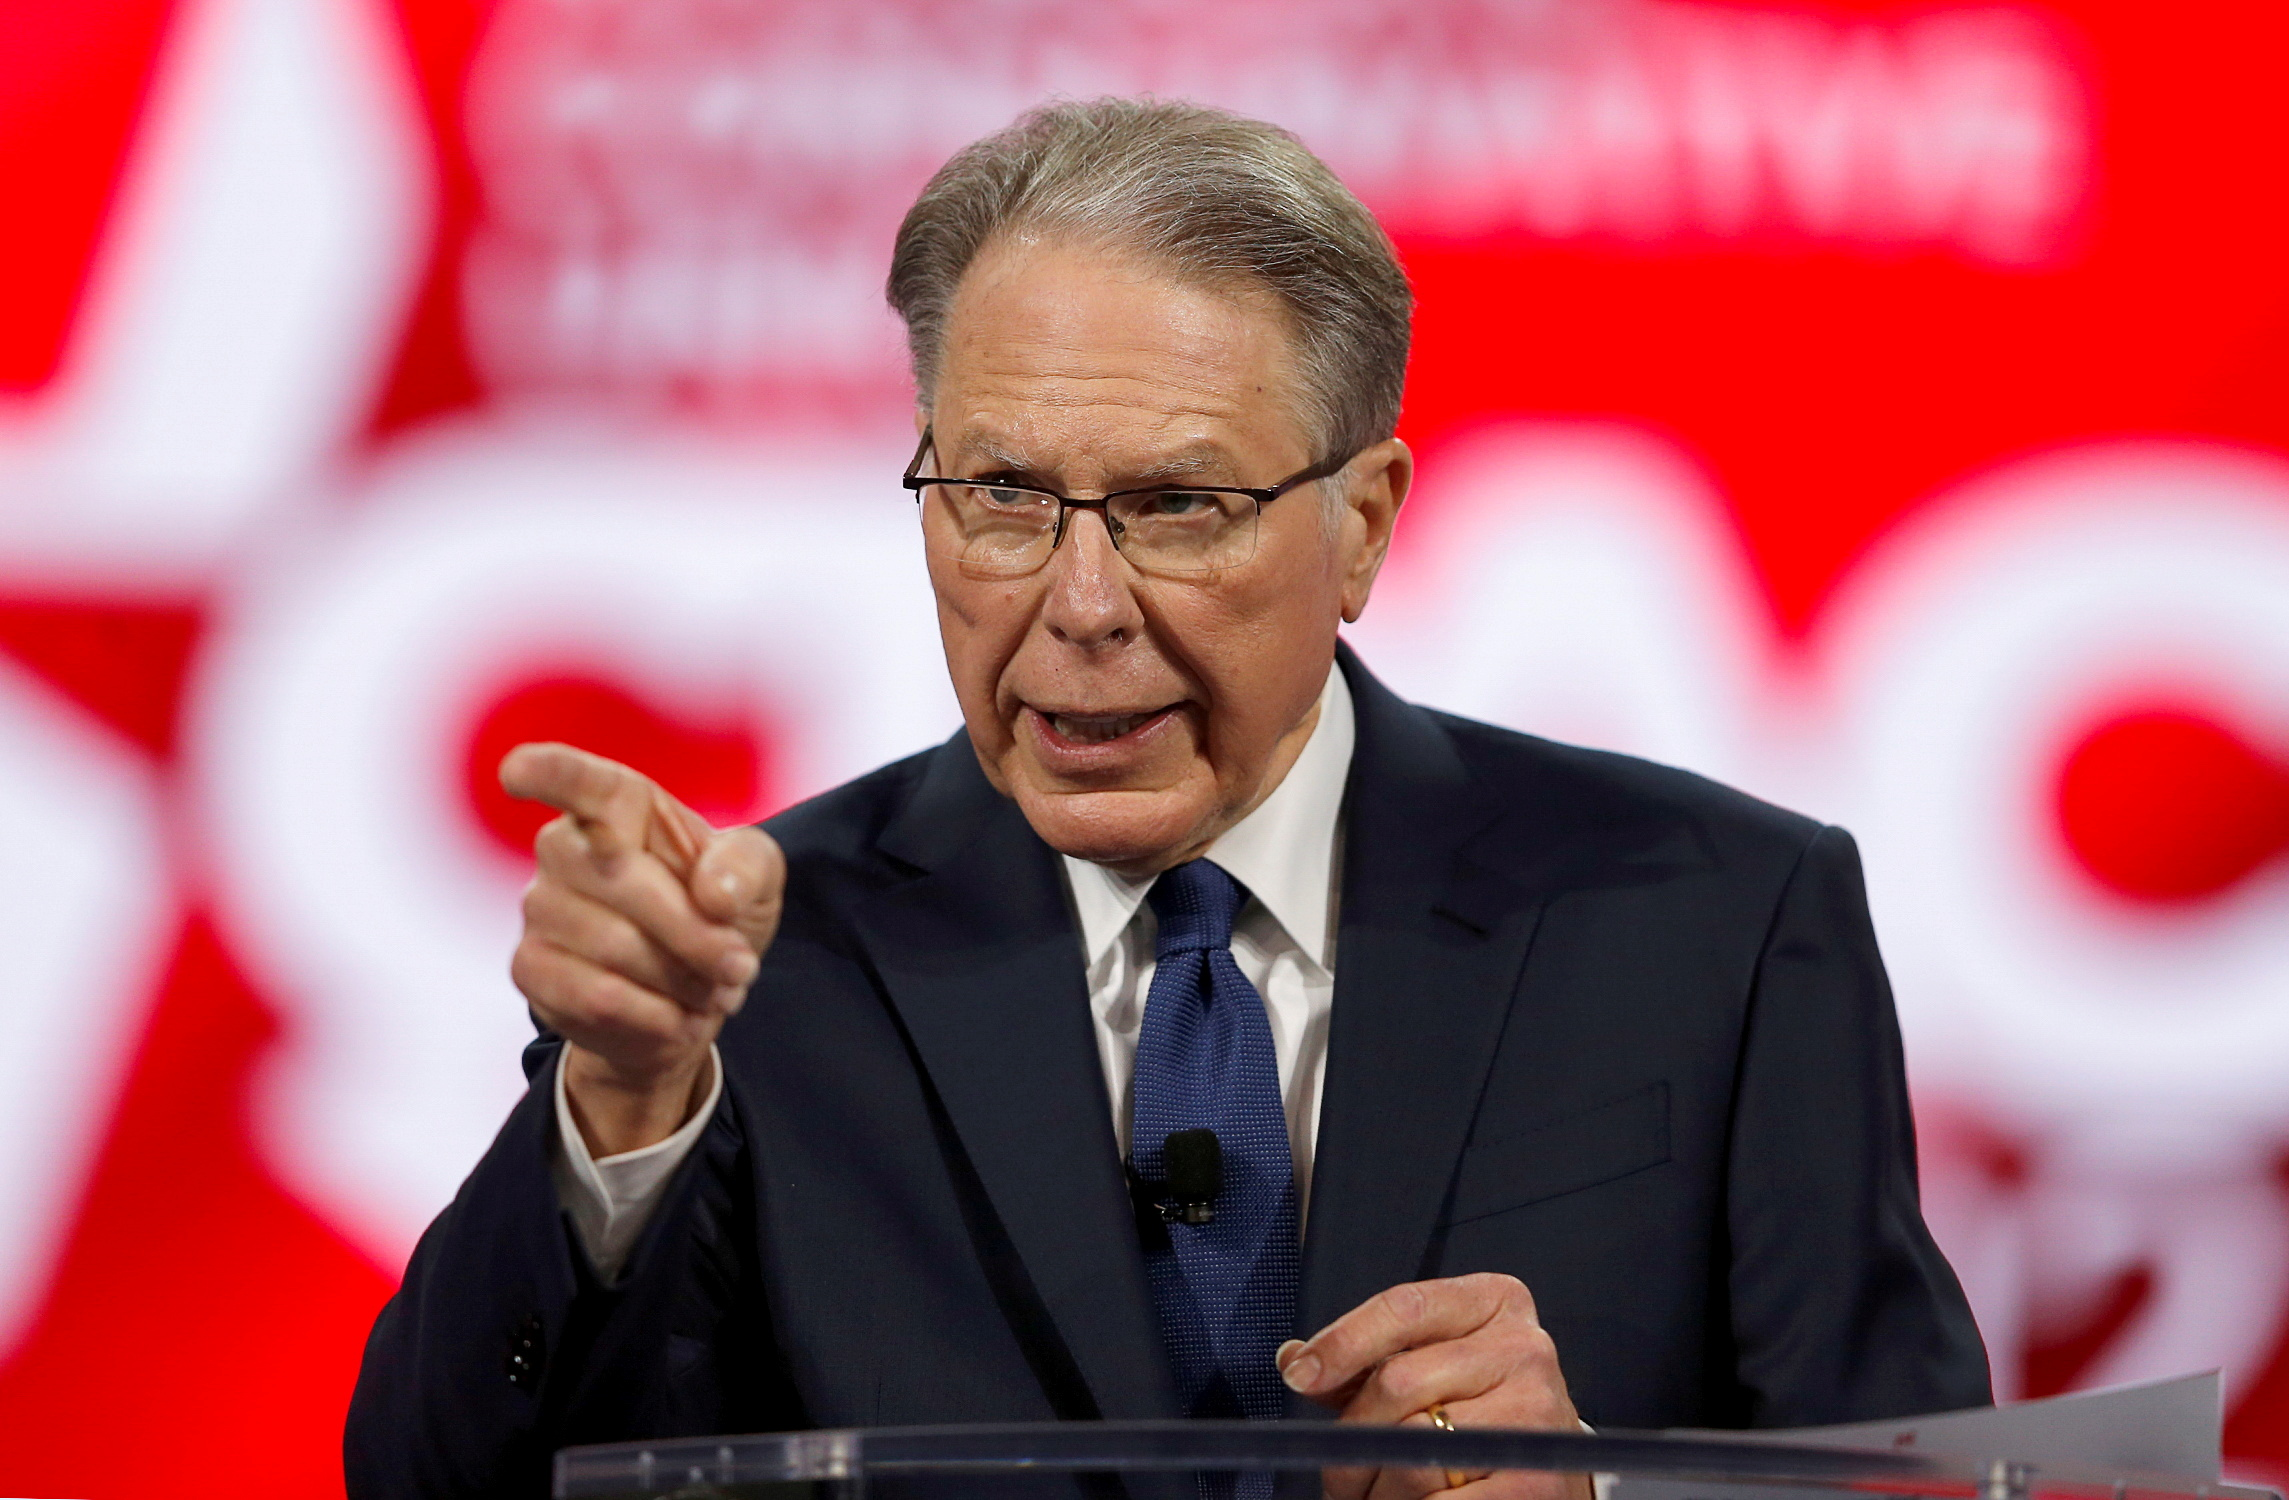 Wayne LaPierre, executive Vice President of the National Rifle Association speaks at the Conservative Political Action Conference (CPAC) in Orlando, Florida, U.S. February 28, 2021. REUTERS/Joe Skipper/File Photo